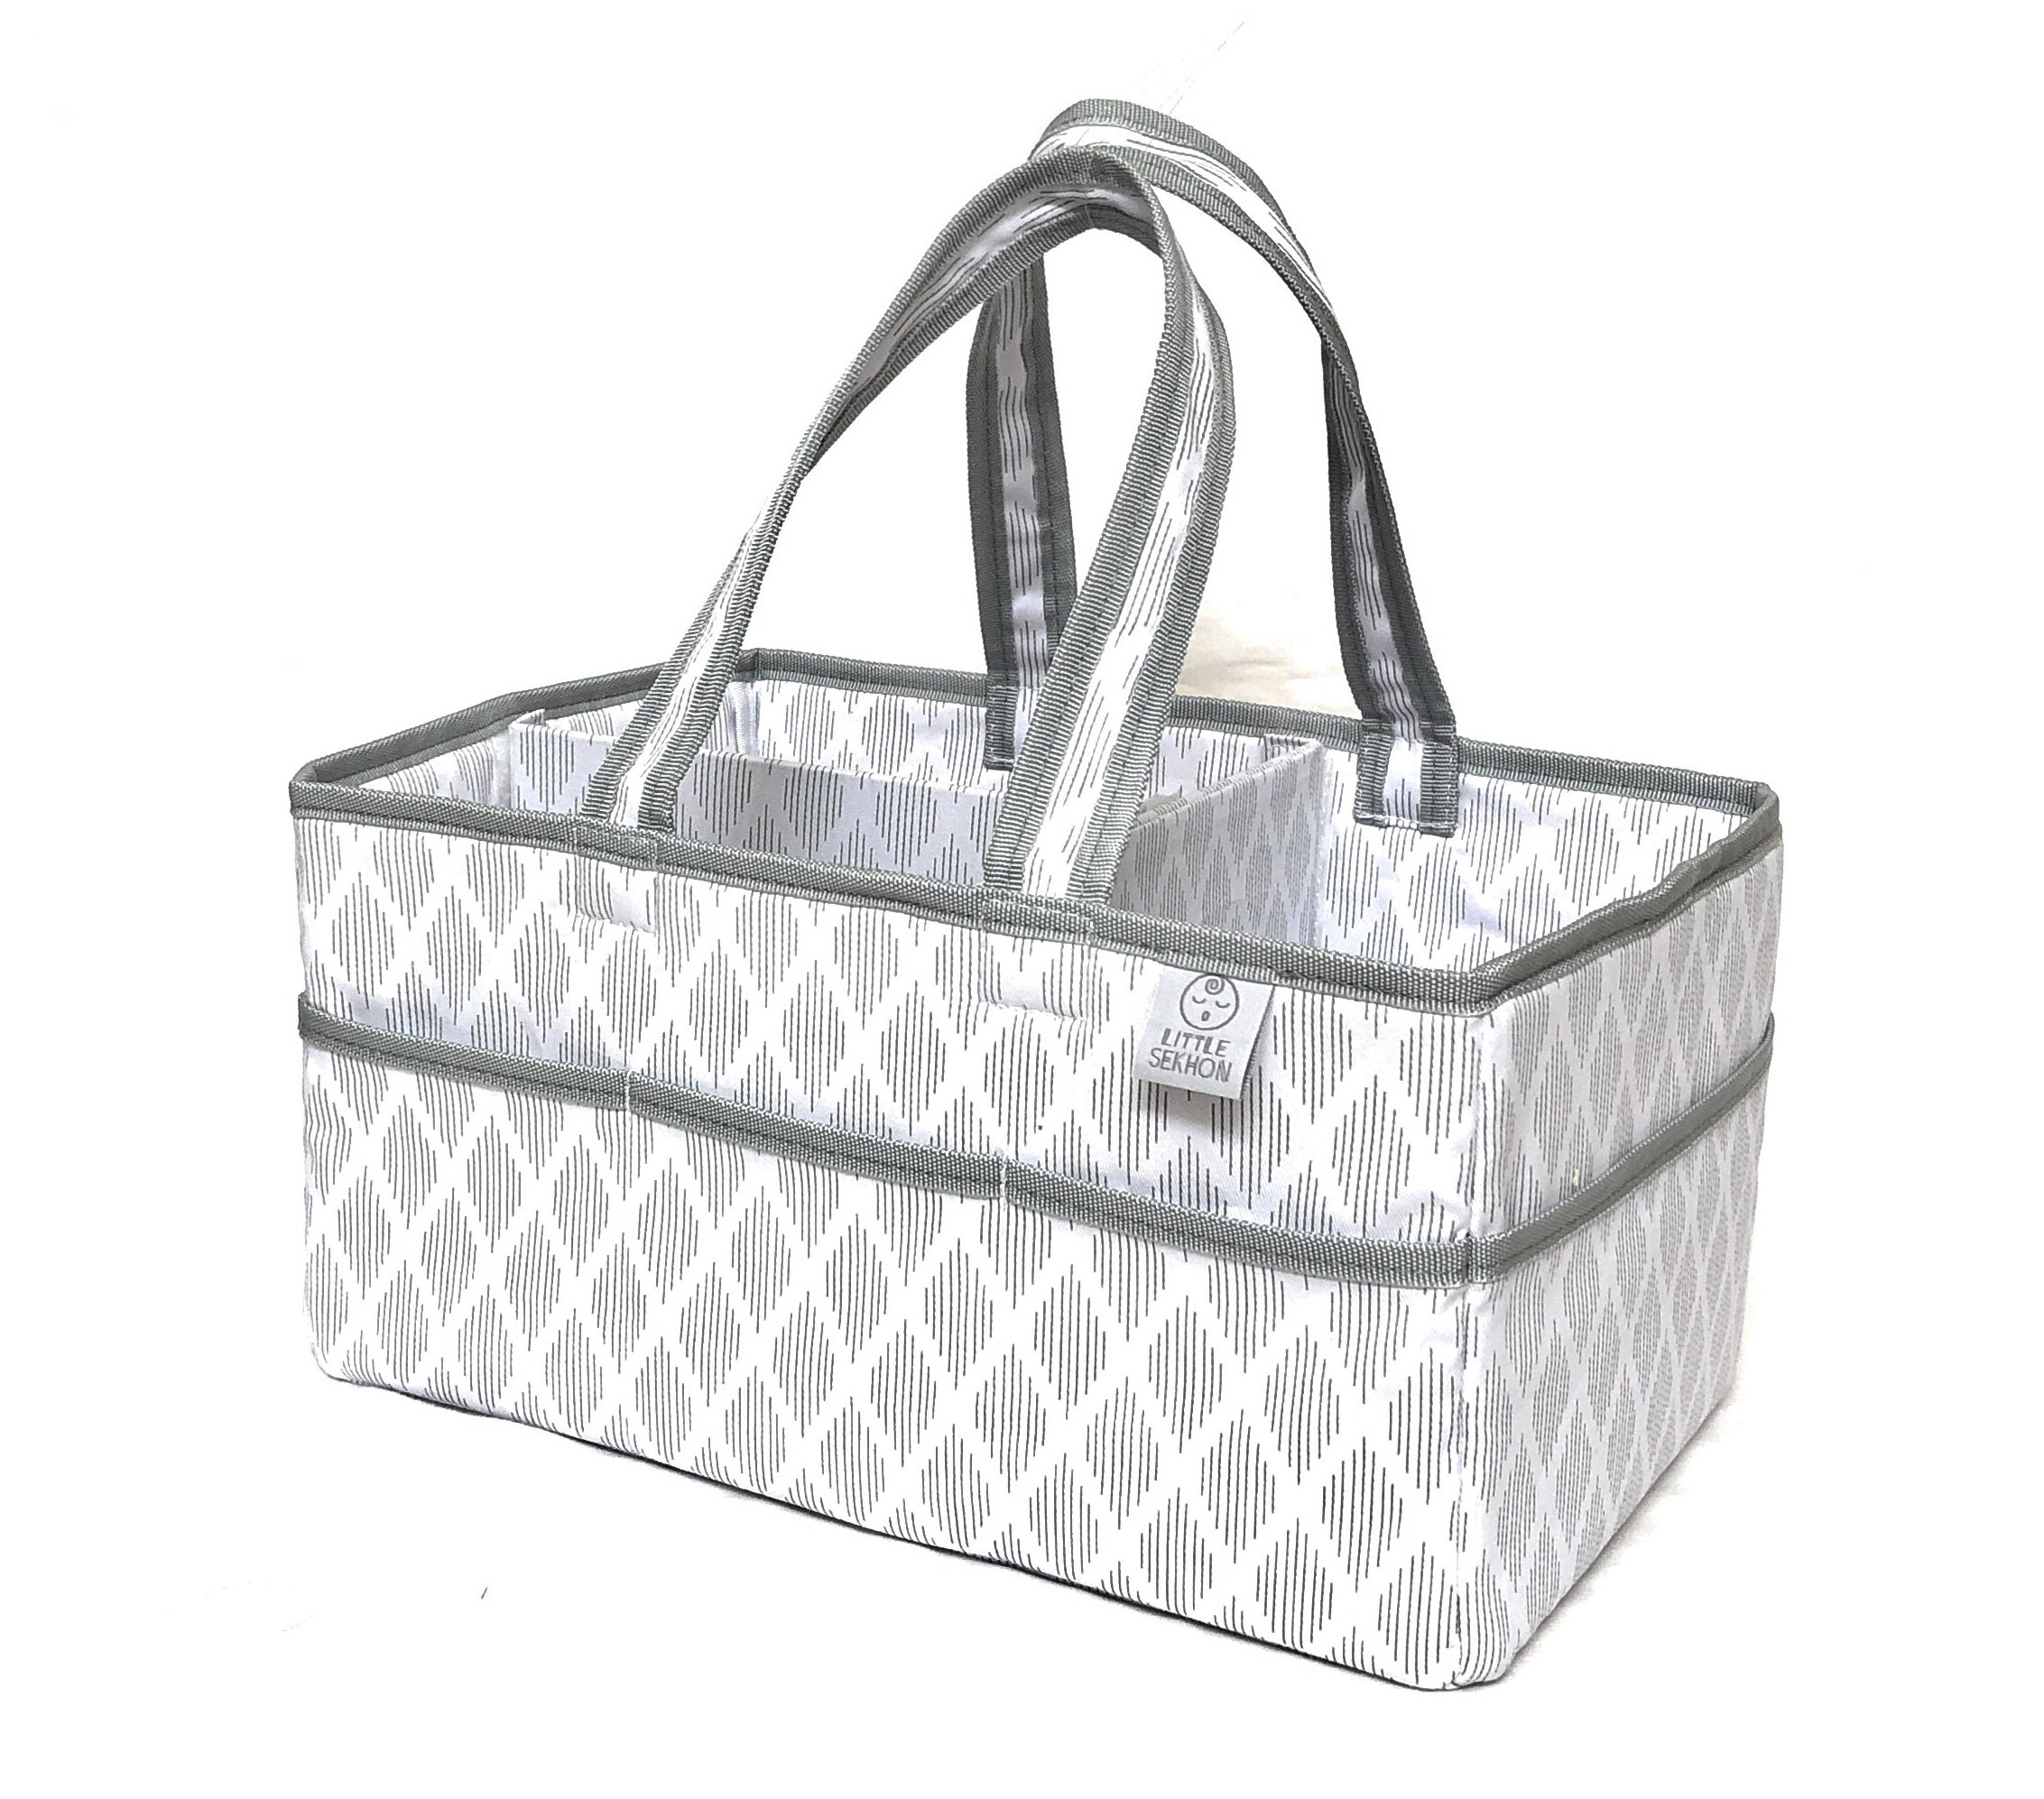 Large Baby Diaper Caddy Organizer-Nursery Storage Bin for Changing Table-Portable and Travel Friendly- 100% Cotton Canvas-Perfect Unisex Baby Shower Gift by Little Sekhon